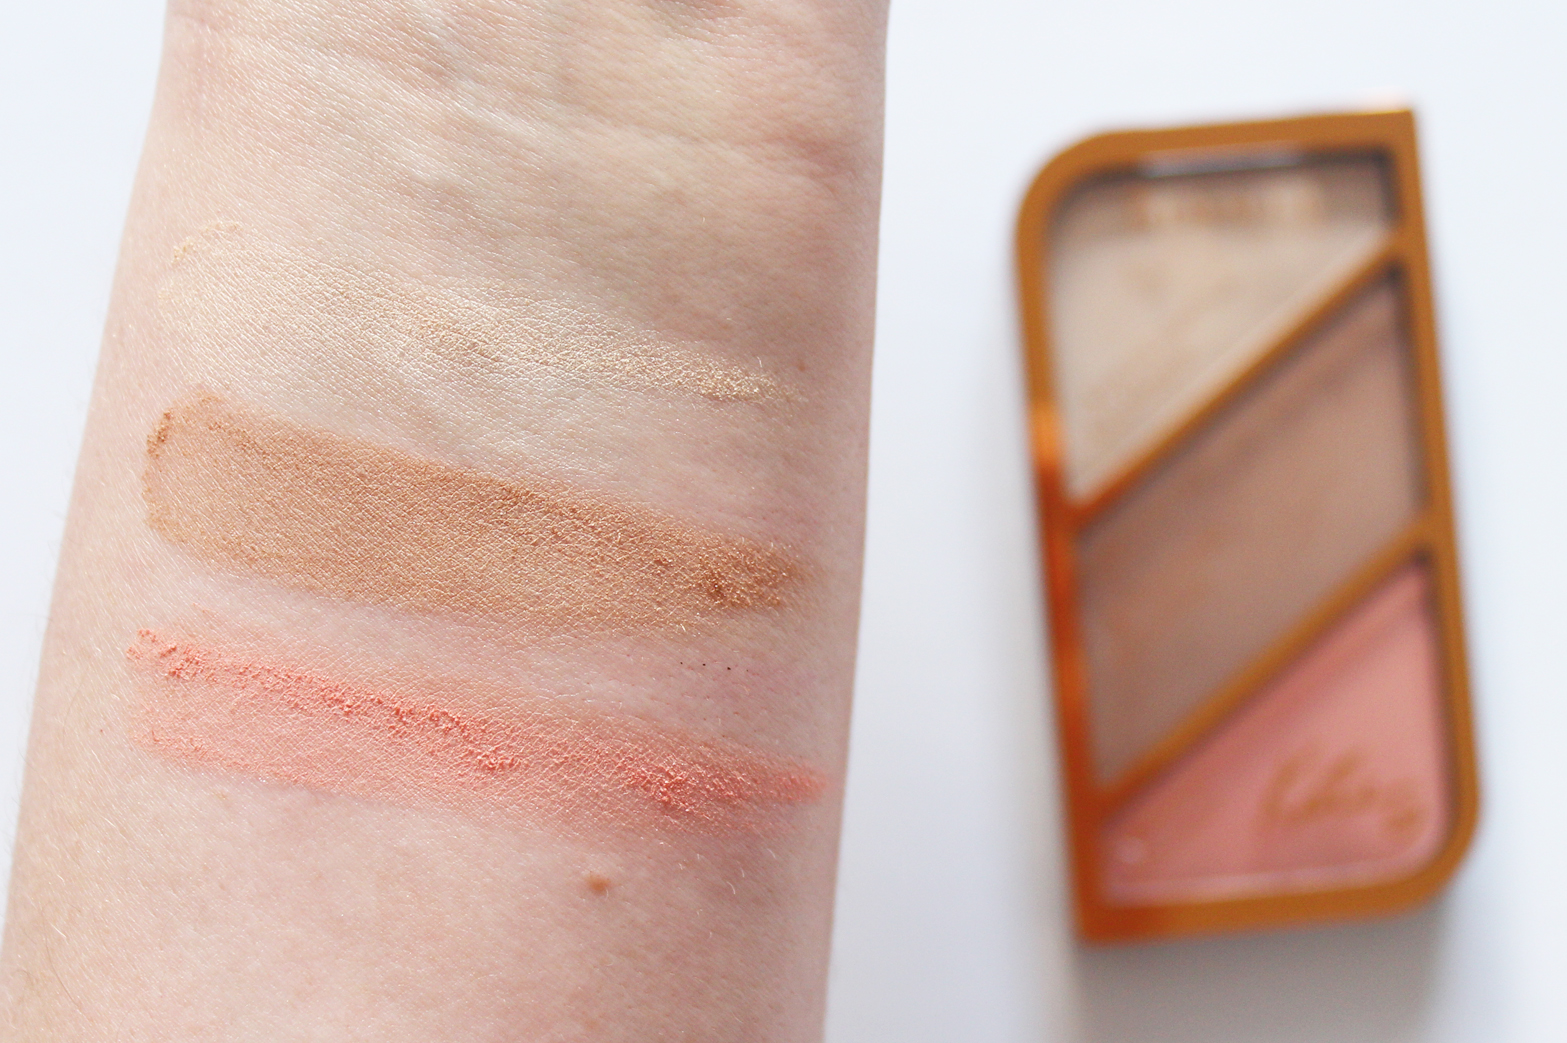 RIMMEL | Kate Sculpting Contour Palette - Review + Swatches - CassandraMyee